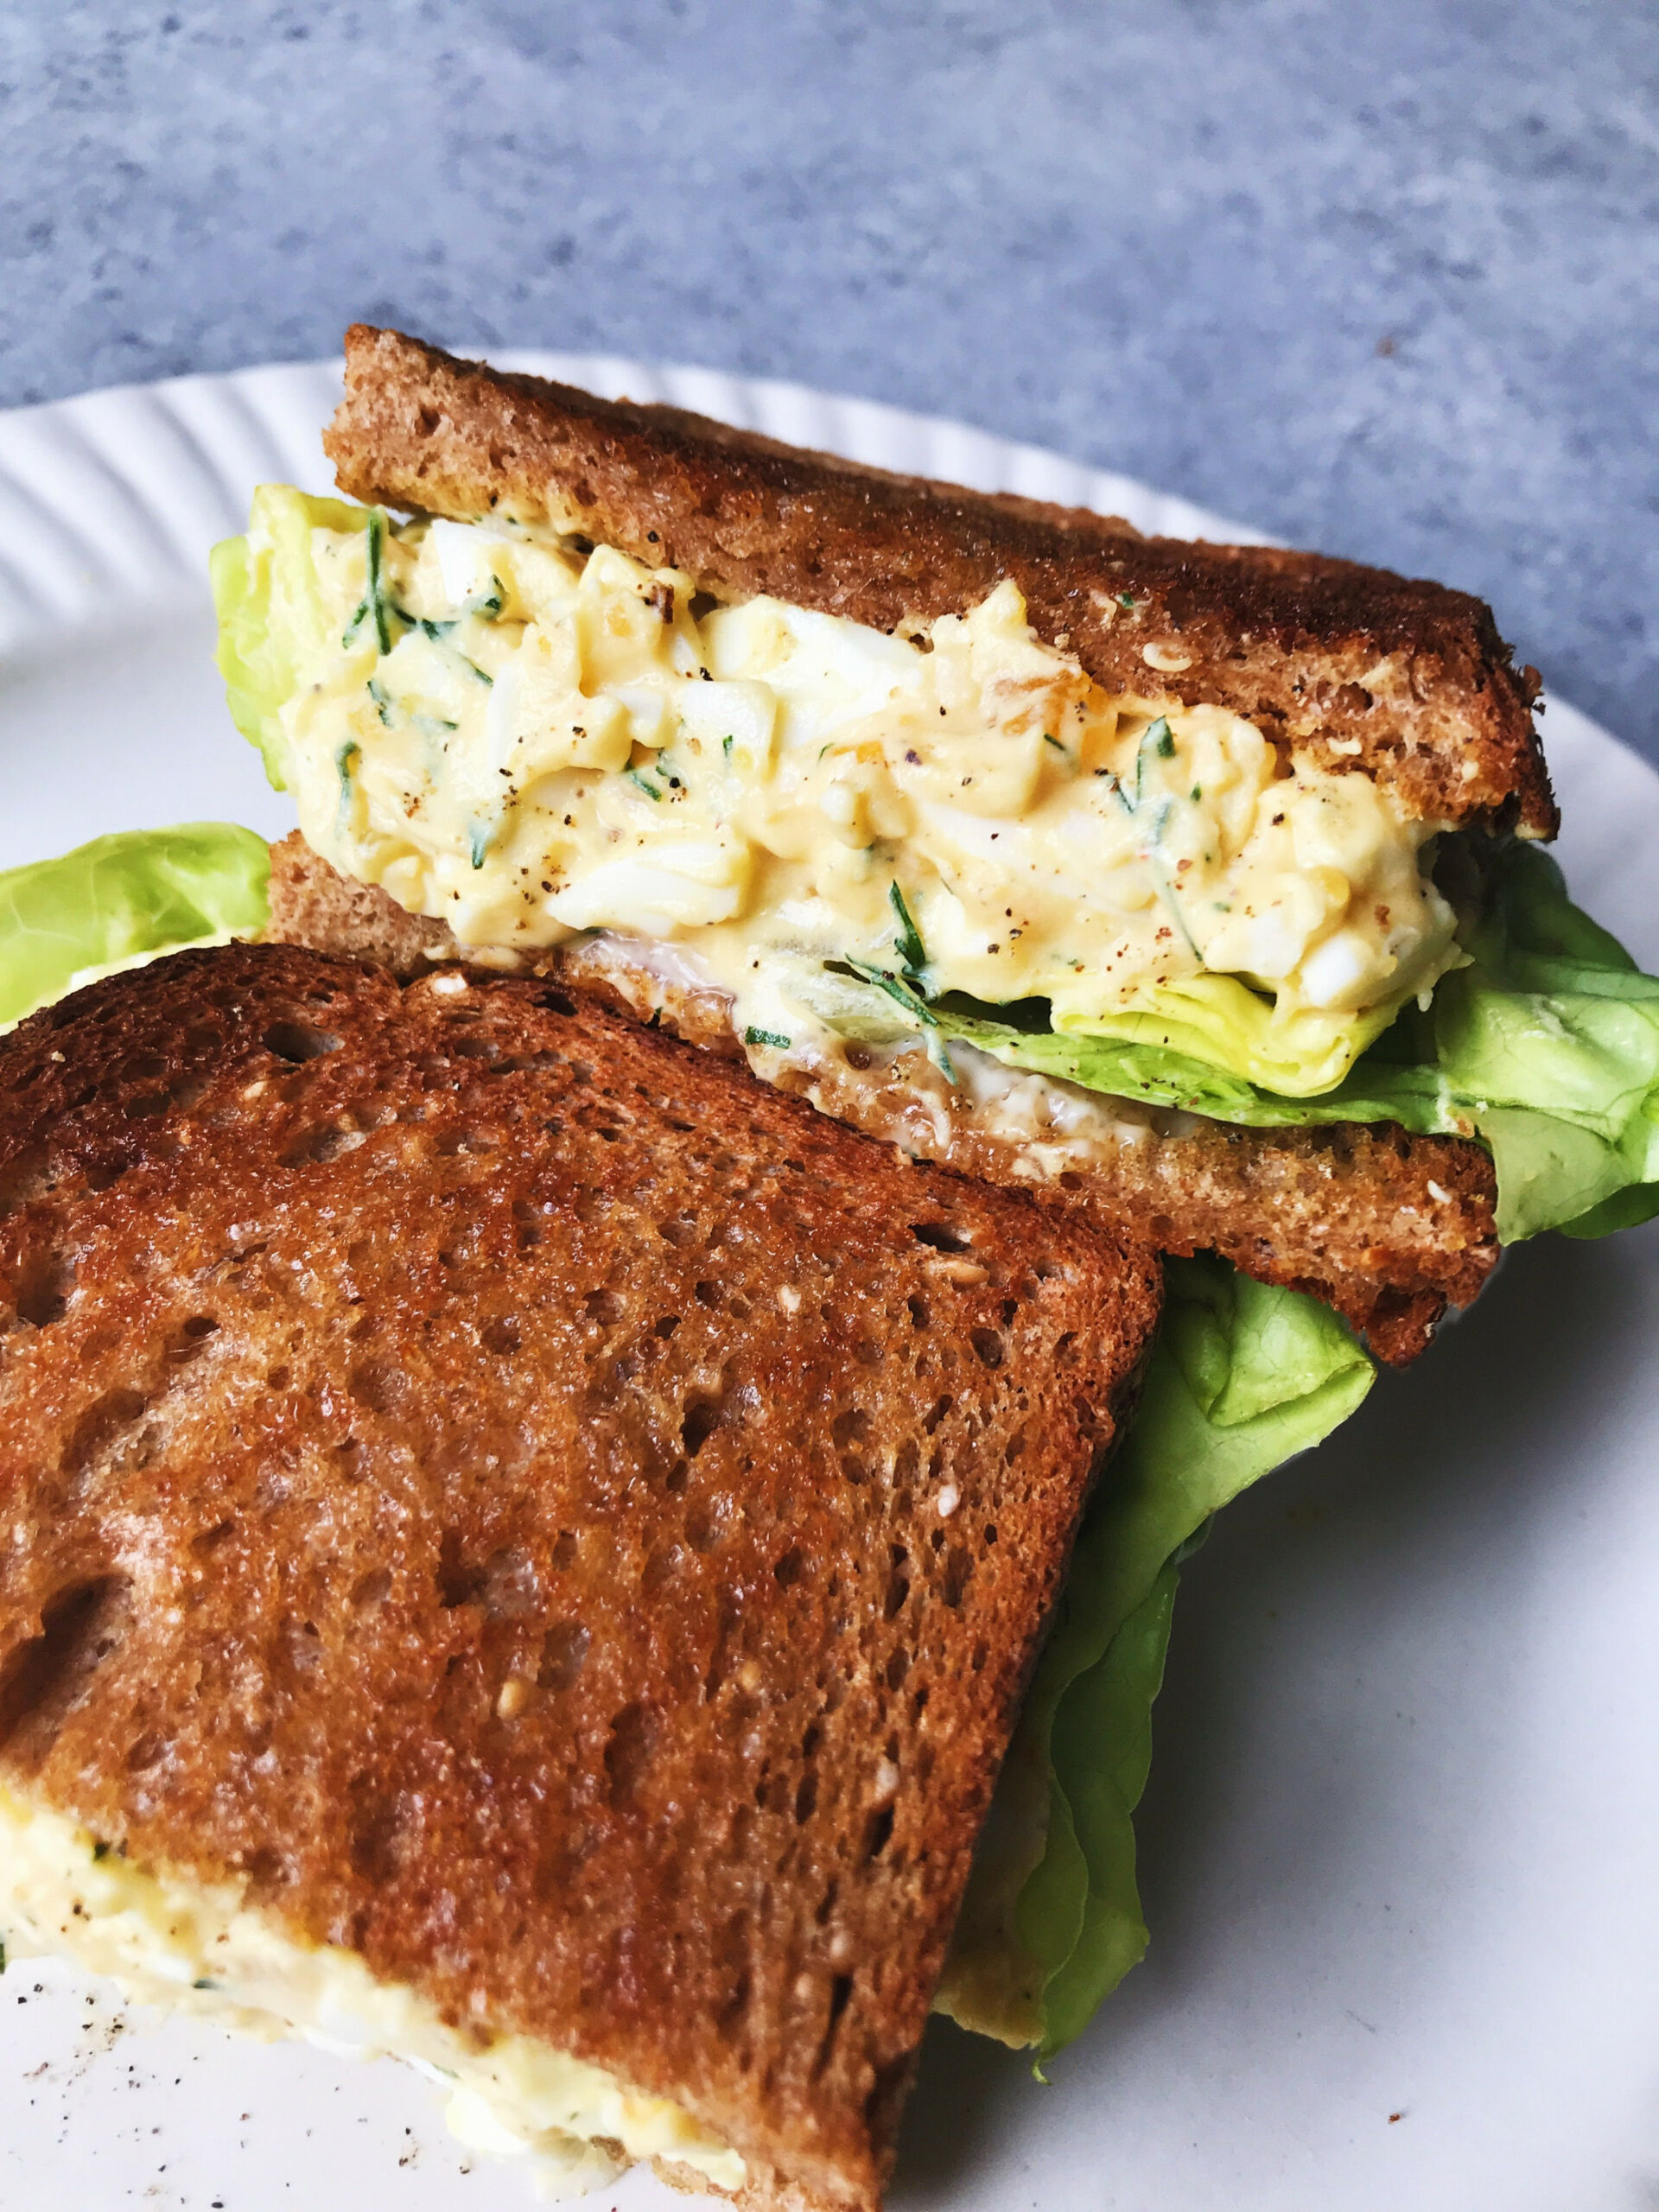 11+ Best Vegetarian Sandwiches - Recipes for Easy Vegetarian ..